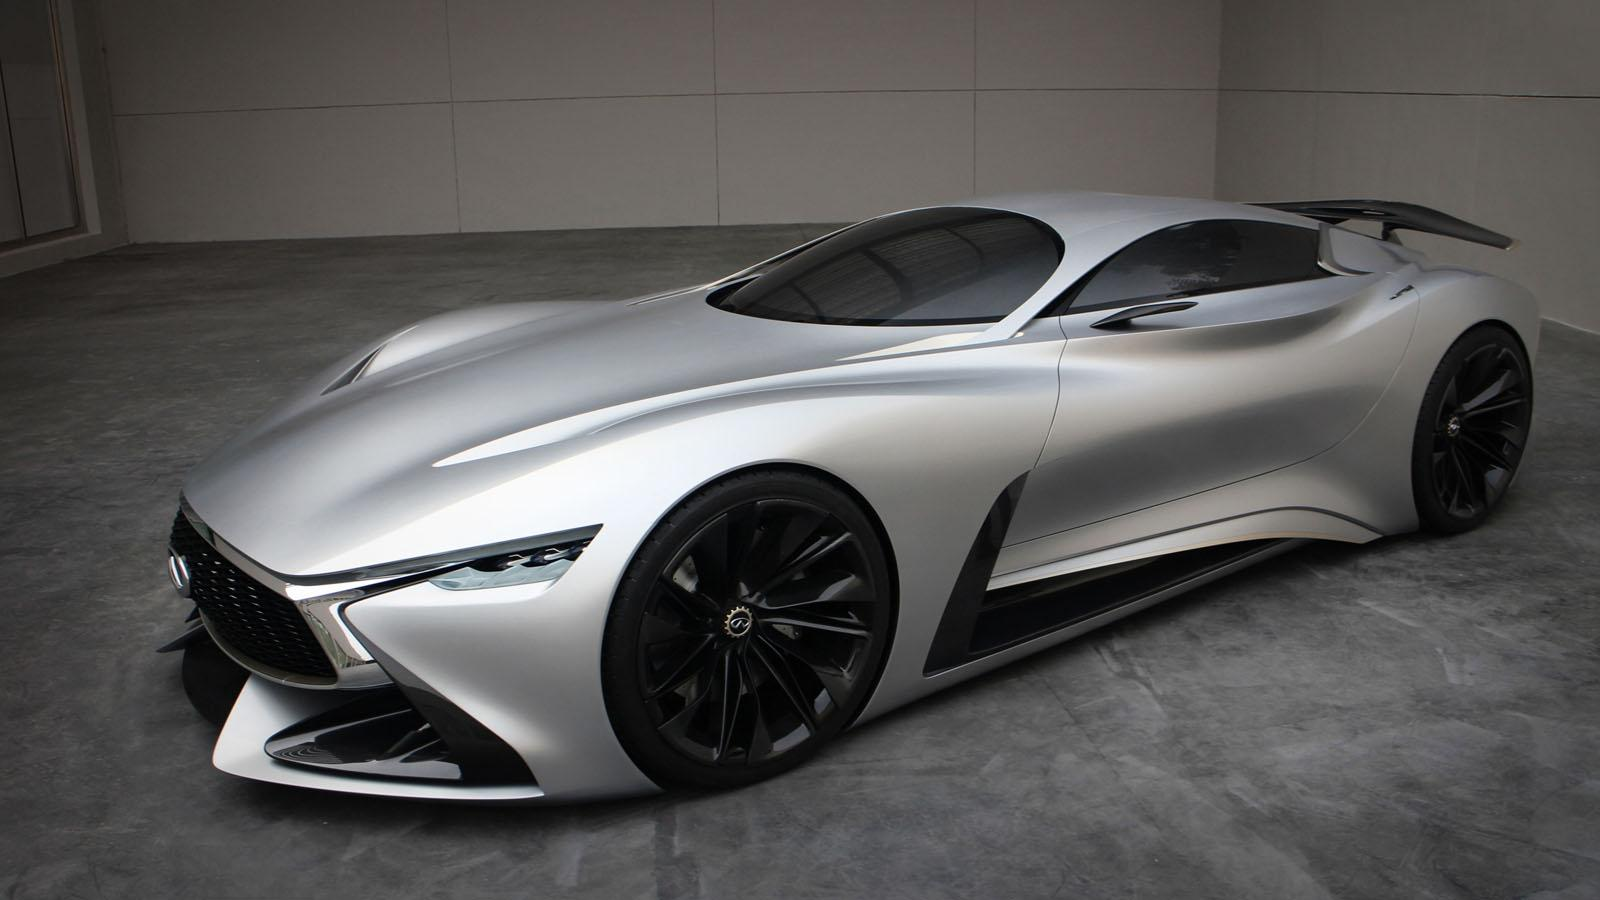 Luxury Vehicle: Infiniti Concept Vision Gran Turismo Brought To Life